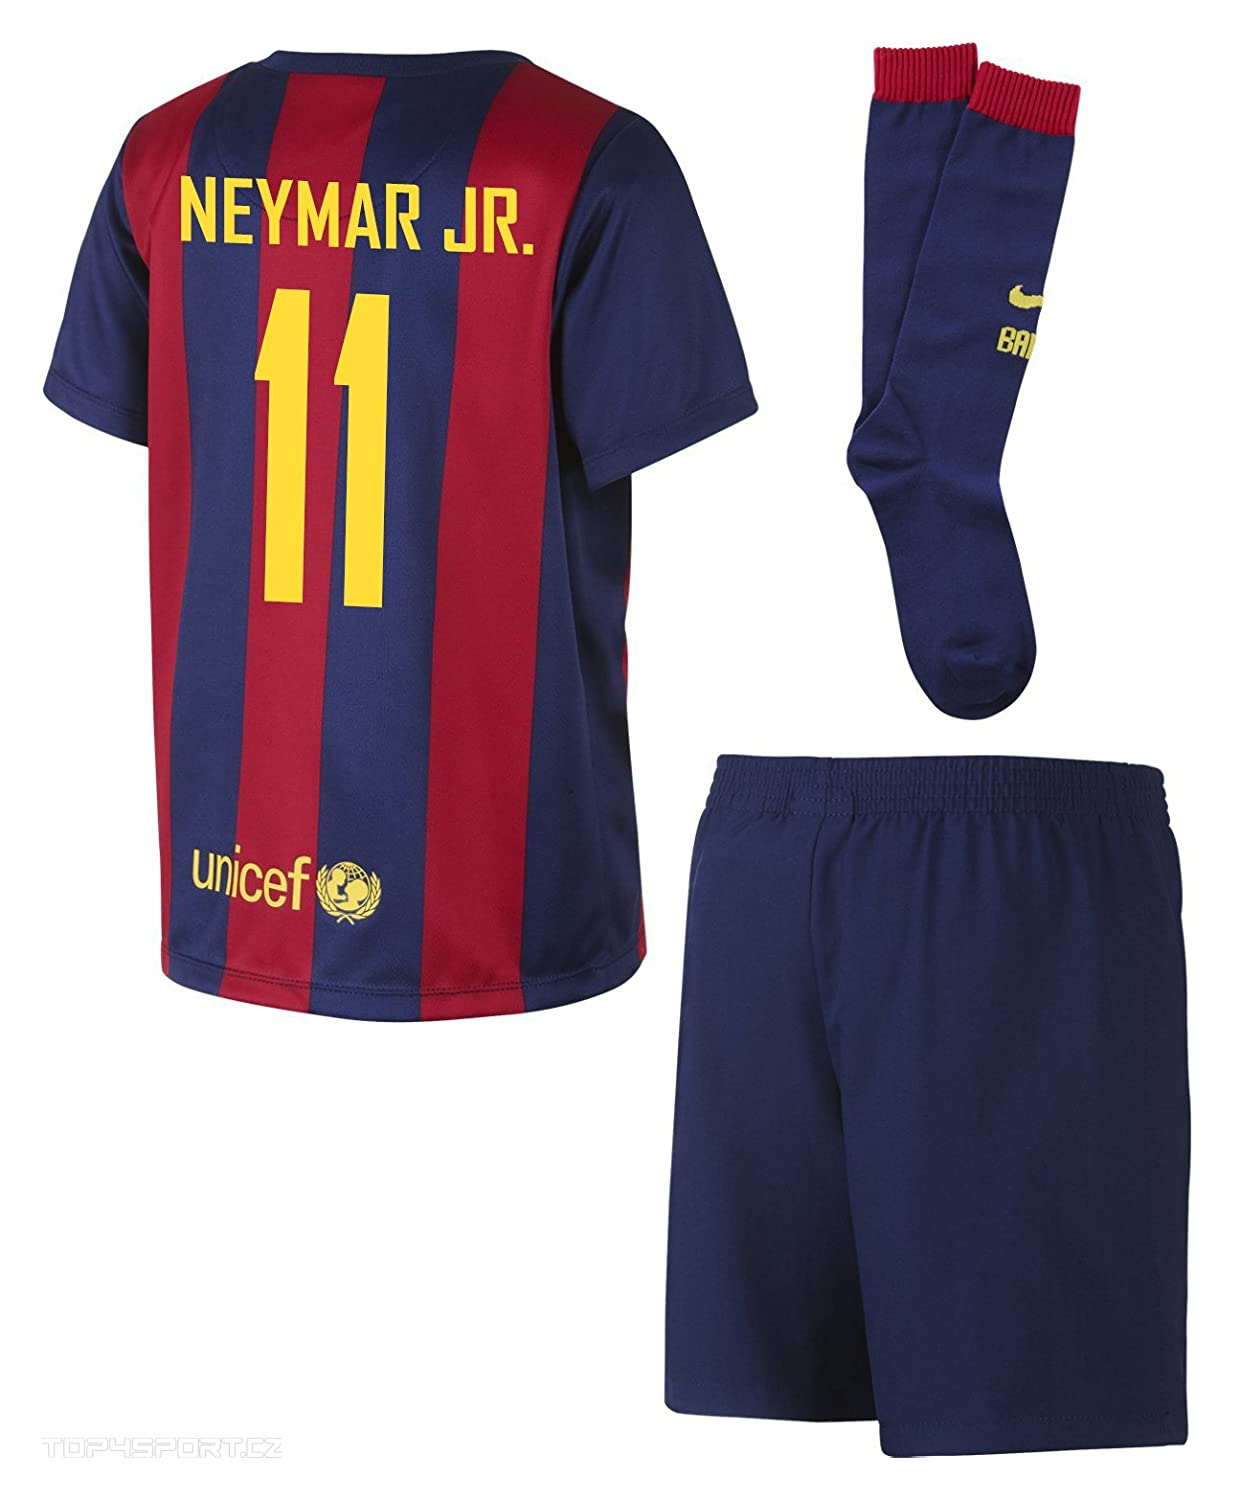 Neymar JR。# 11 Nike FC Barcelona Toddlerホームmini-kitセット B00WAEWP9S Large